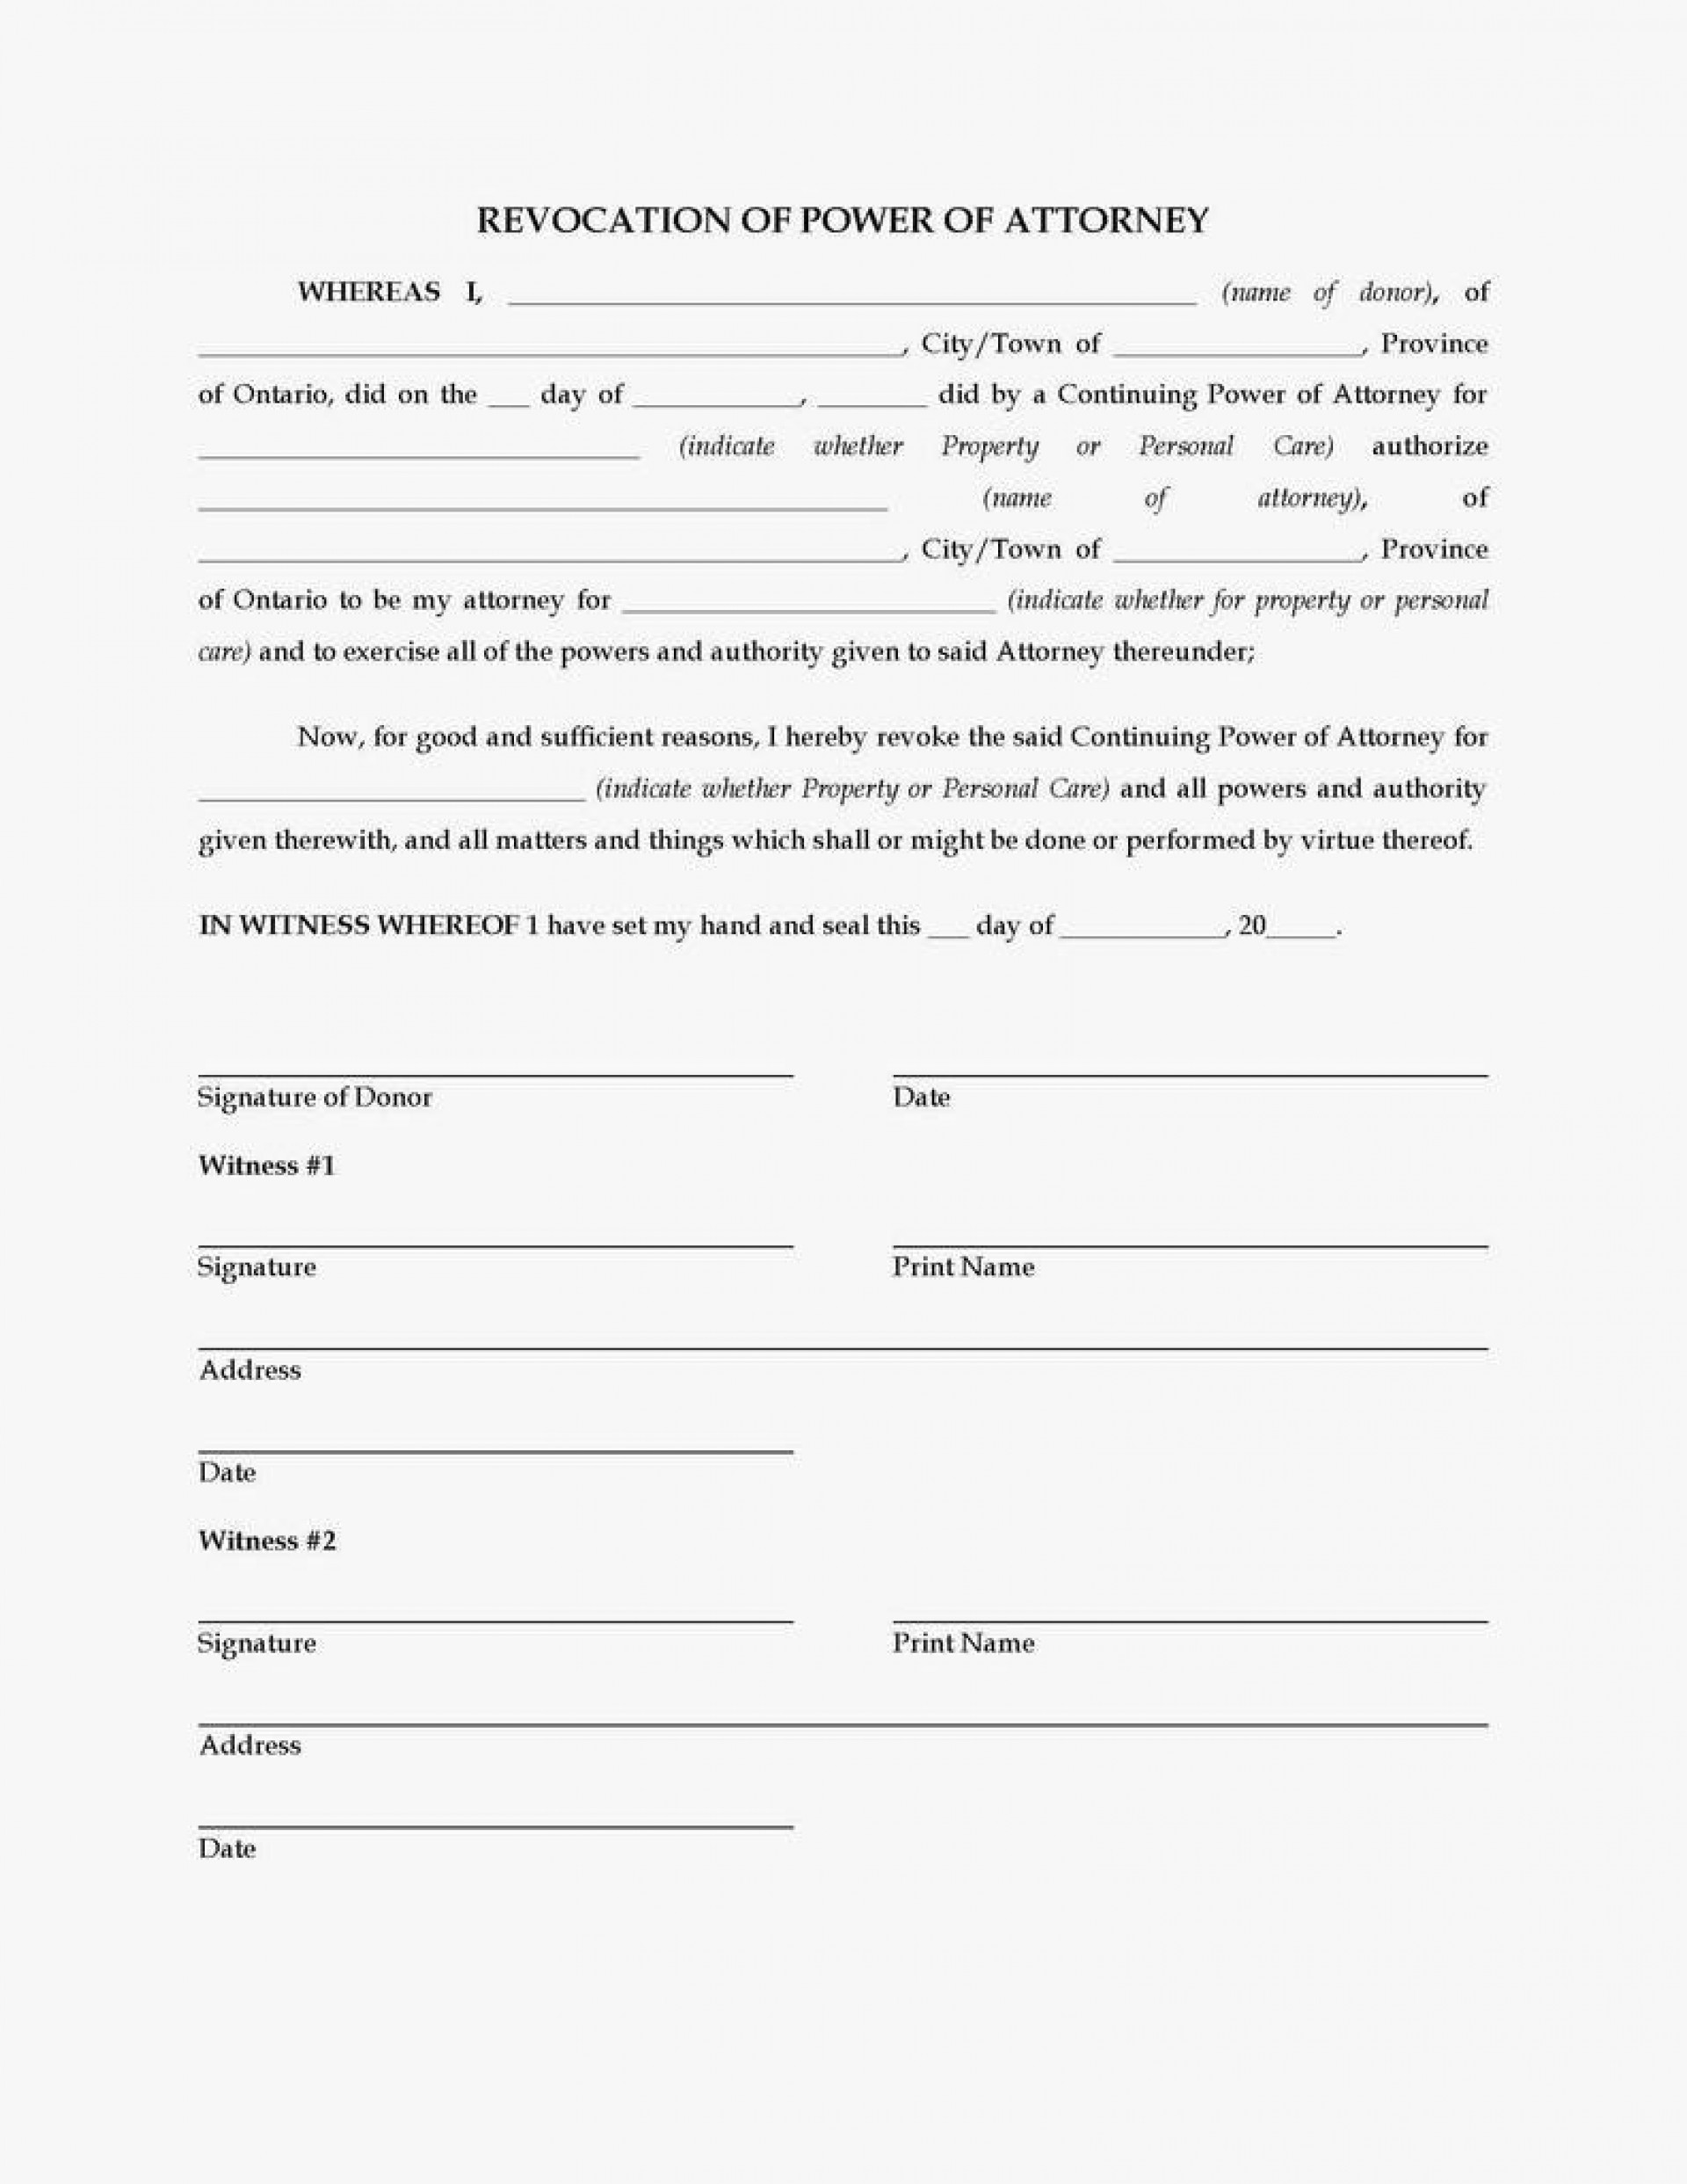 005 Remarkable Free Parental Medical Consent Form Template Design 1920